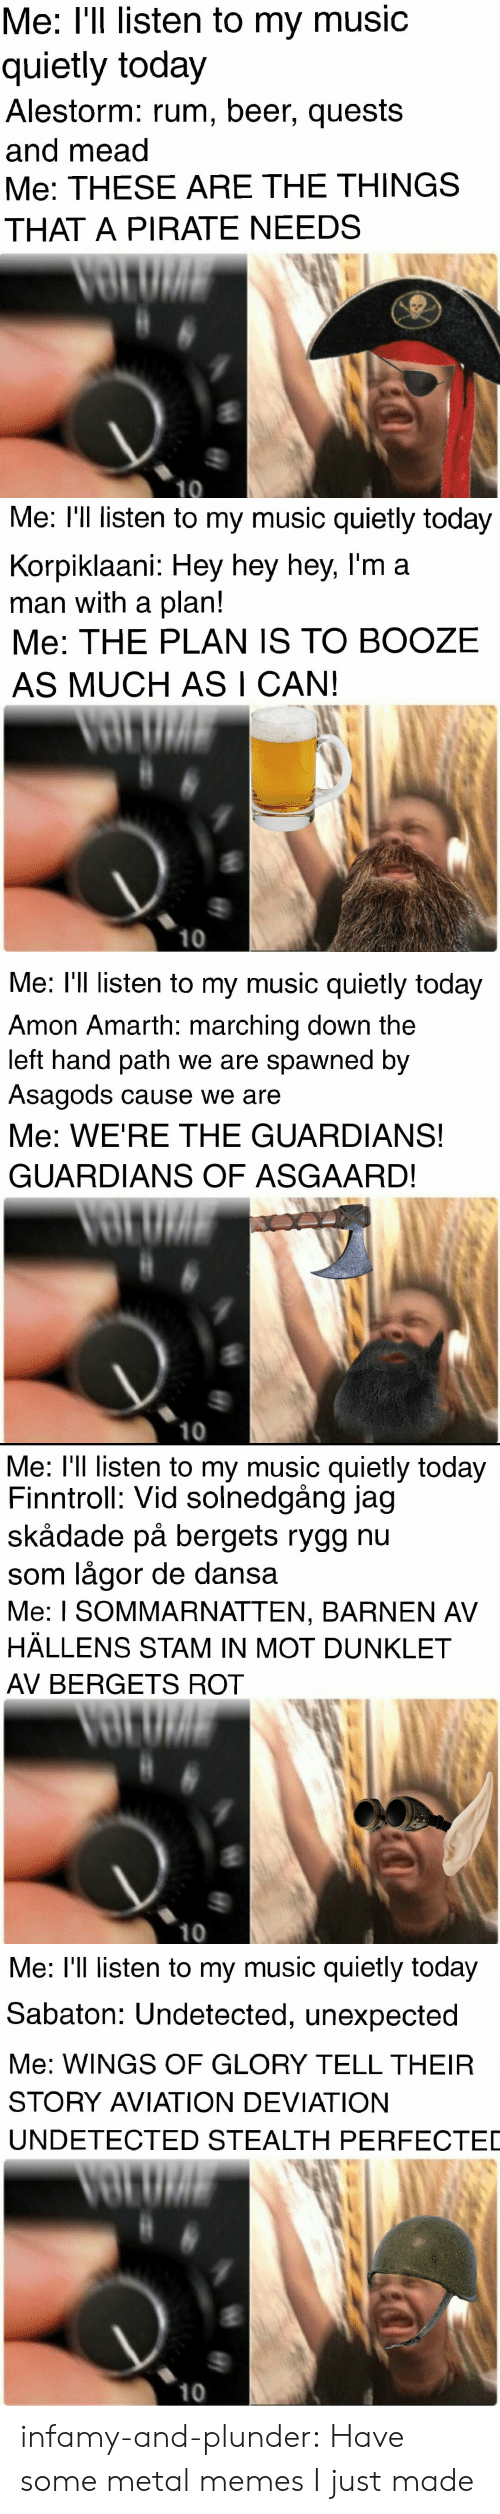 sabaton: Me: I'l listen to my music  quietly today  Alestorm: rum, beer, quests  and mead  Me: THESE ARE THE THINGS  THAT A PIRATE NEEDS   Me: l'll listen to my music quietly today  Korpiklaani: Hey hey hey, l'm a  man with a plan!  Me: THE PLAN 1S TO BOOZE  AS MUCH AS I CAN!  10   Me: l'll listen to my music quietly today  Amon Amarth: marching down the  left hand path we are spawned by  Asagods cause we are  Me: WE'RE THE GUARDIANS!  GUARDIANS OF ASGAARD!  10   Me: l'll listen to my music quietly today  Finntroll: Vid solnedgång jag  skådade på bergets rygg nu  som lågor de dans:a  Me: I SOMMARNATTEN, BARNEN AV  HÄLLENS STAM IN MOT DUNKLET  AV BERGETS ROT  10   Me: l'll listen to my music quietly today  Sabaton: Undetected, unexpected  Me: WINGS OF GLORY TELL THEIR  STORY AVIATION DEVIATION  UNDETECTED STEALTH PERFECTED  10 infamy-and-plunder:  Have some metal memes I just made